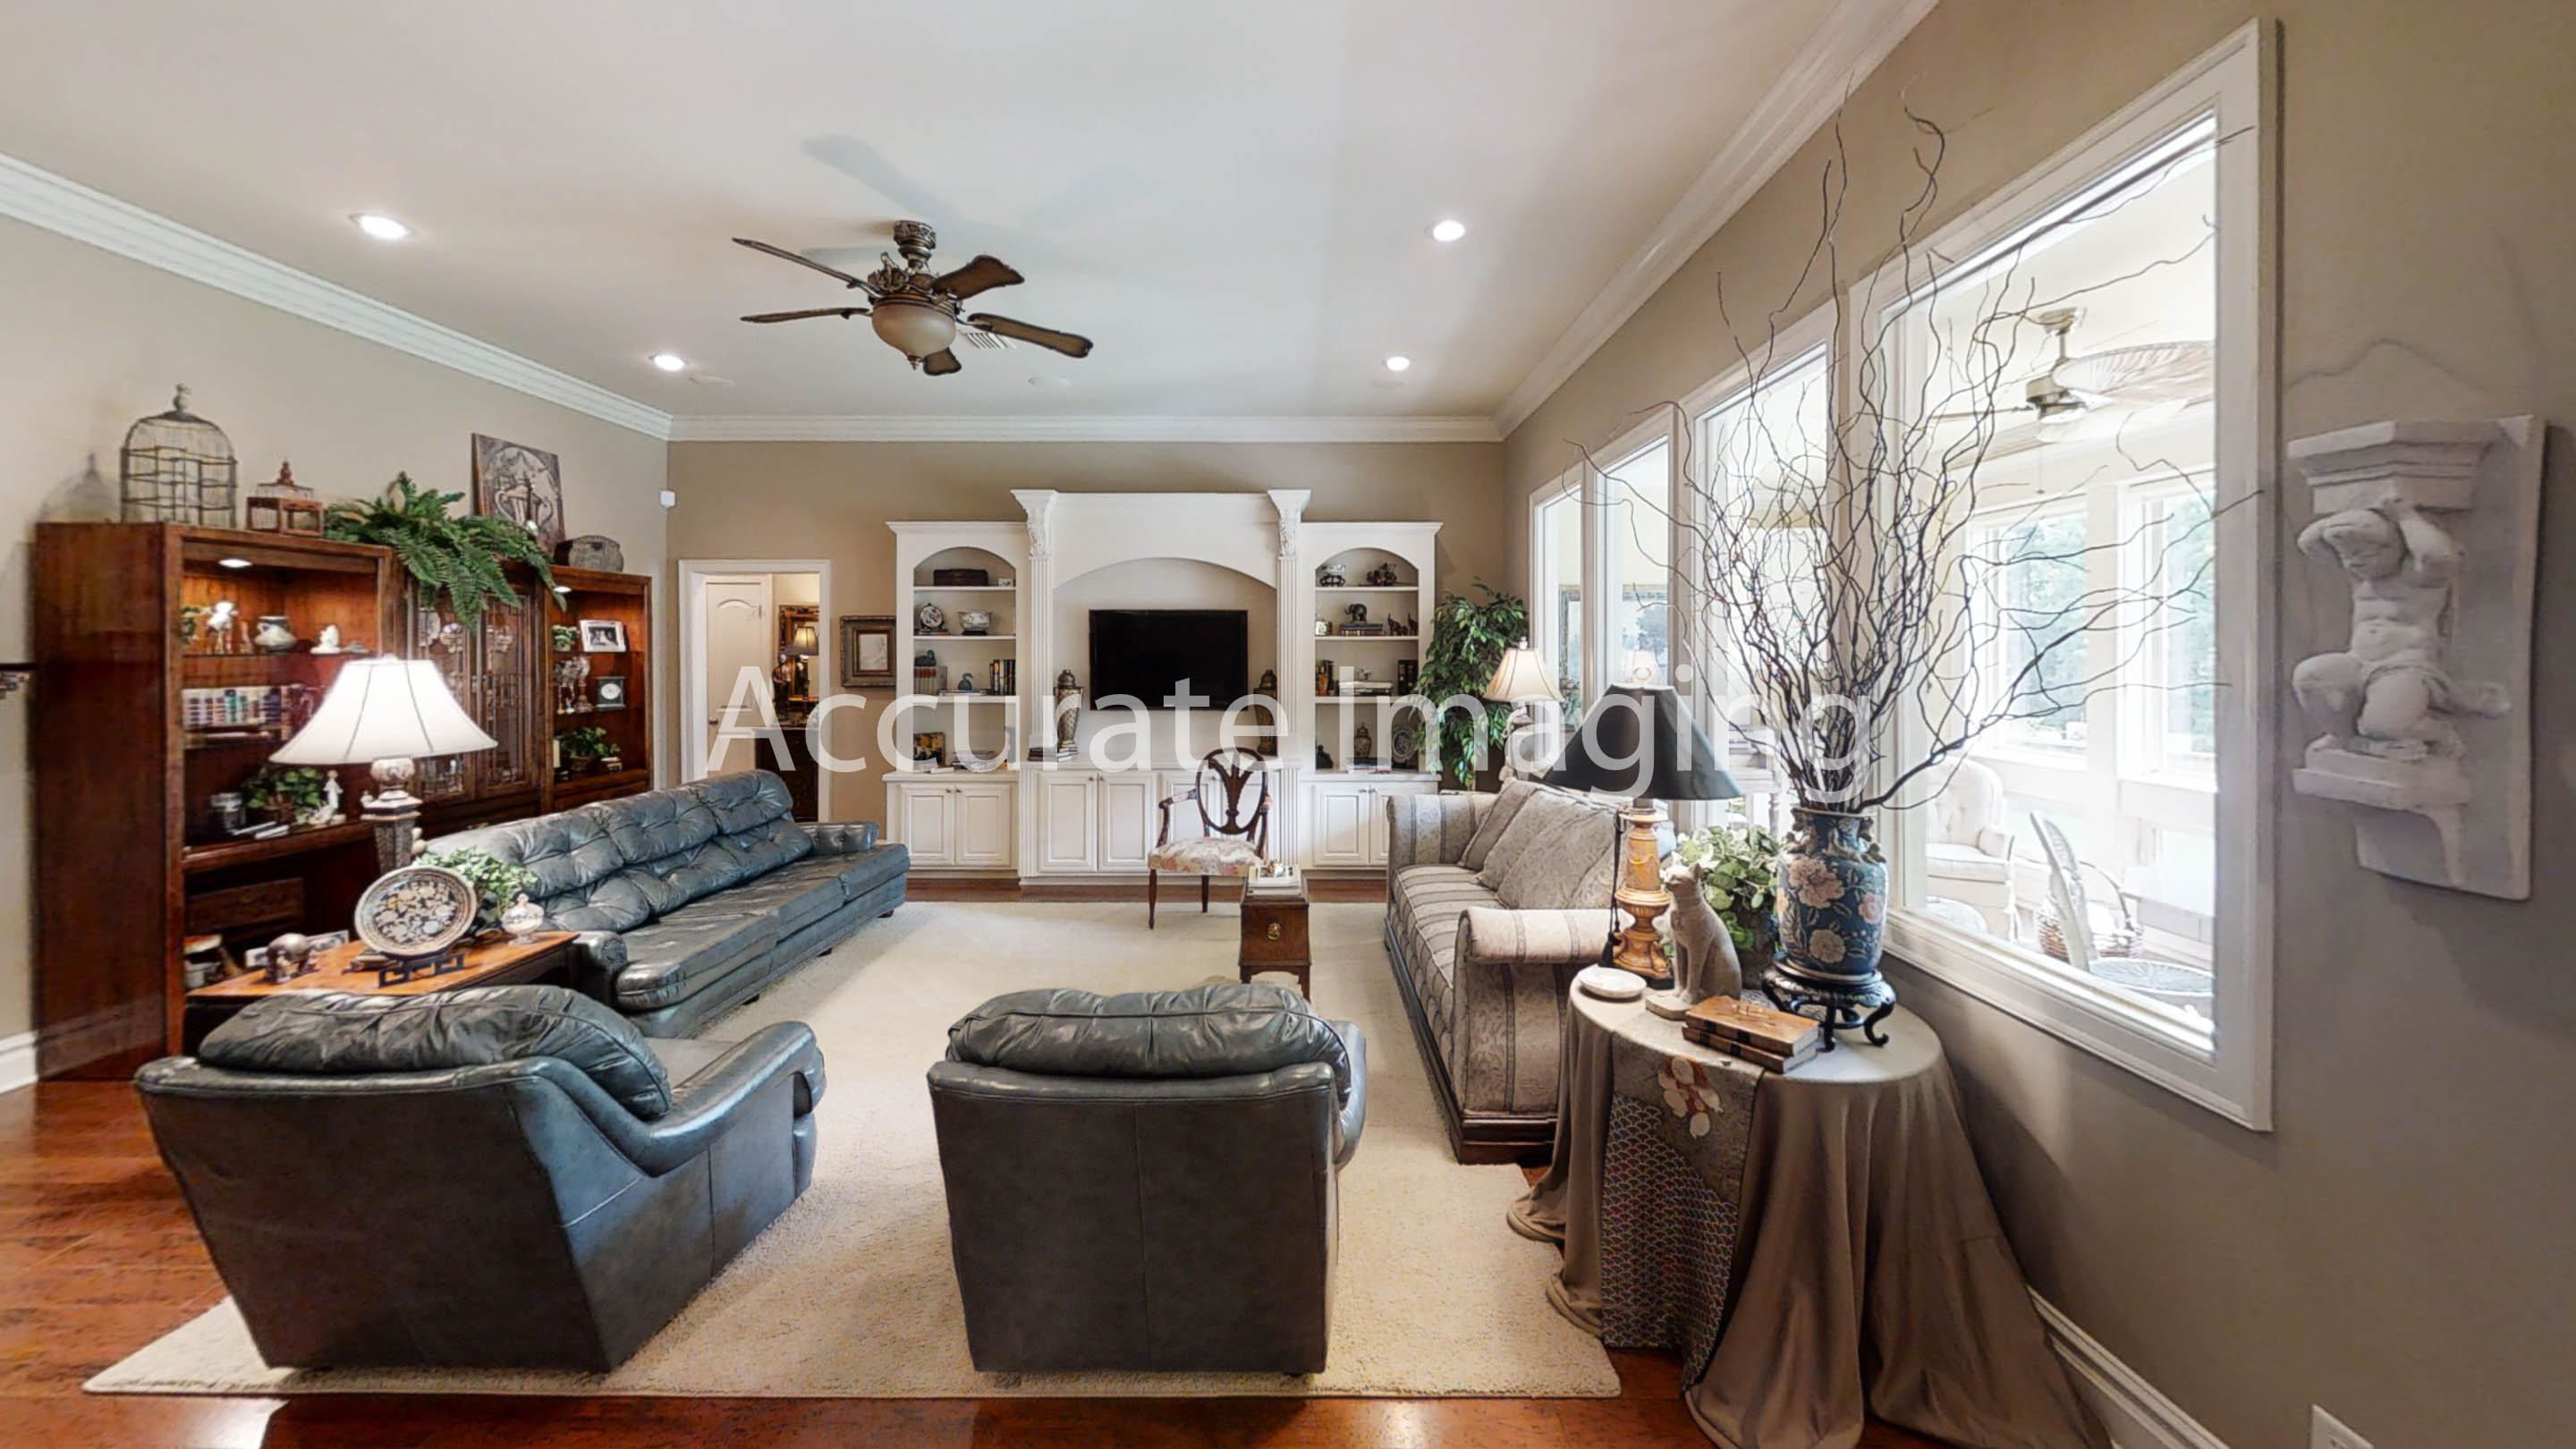 670-Huntington-Living-Room